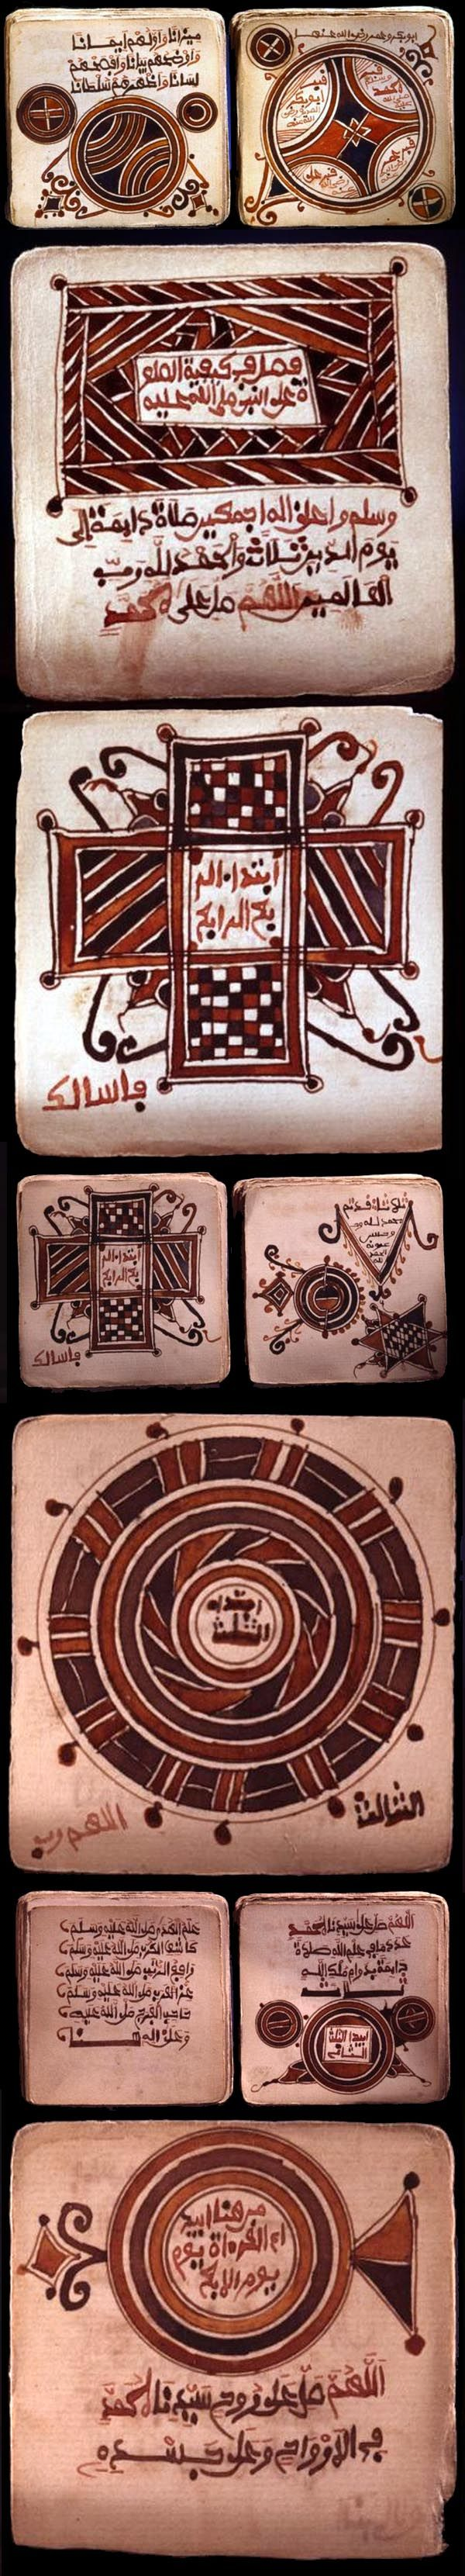 Africa   Decorated pages from a miniature Koran. The decoration shows the typical Islam magic design that accompanied the penetration of Islam to the sub-Saharan Africa.   Hausa people, Nigeria   Period; late 17th - early 18th century   Image ©Werner Forman Archive